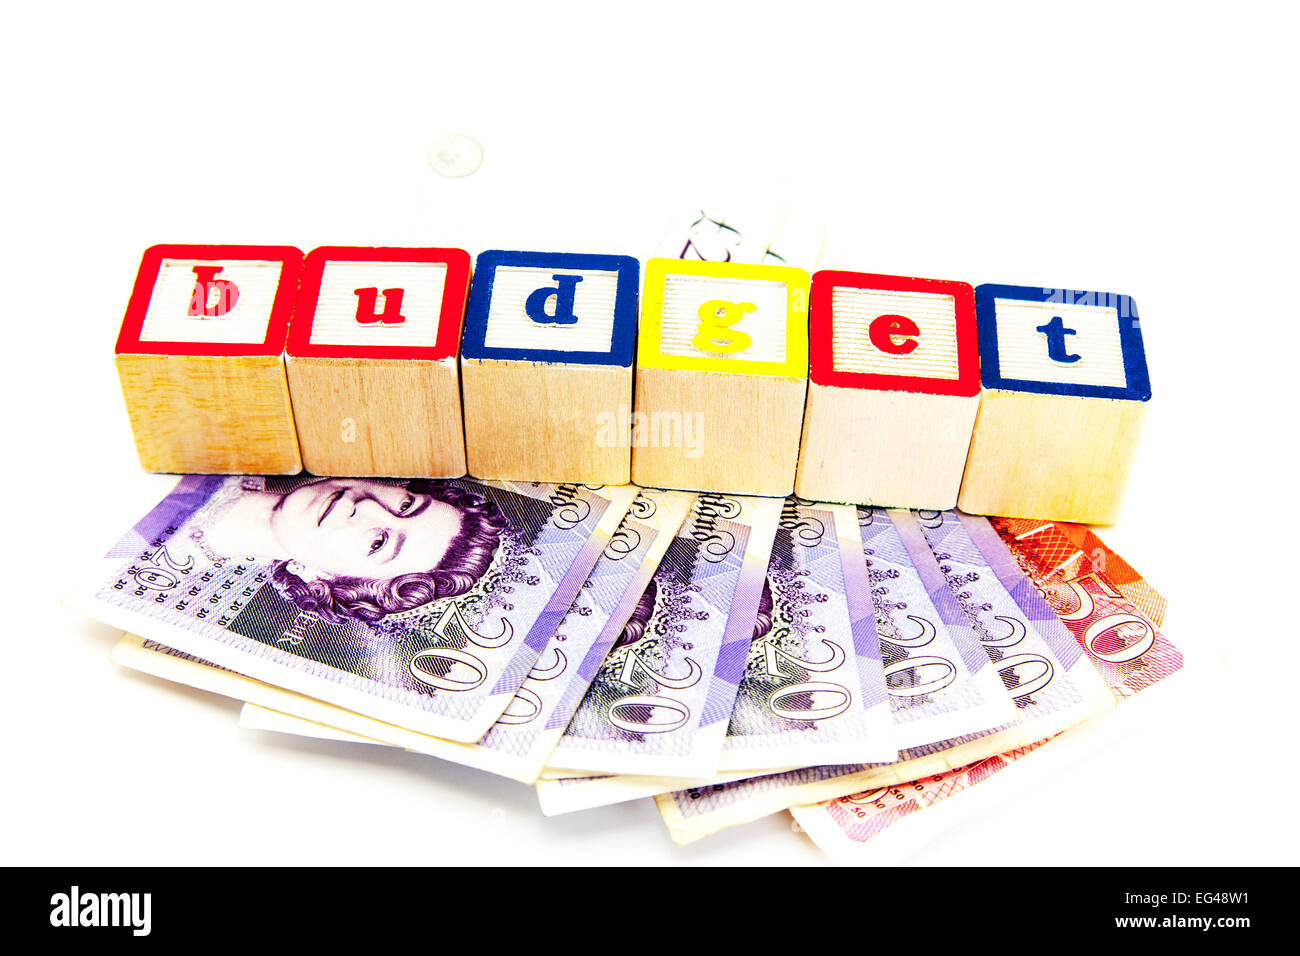 budget money cash government funds fund manage expenses cut out copy space white background - Stock Image